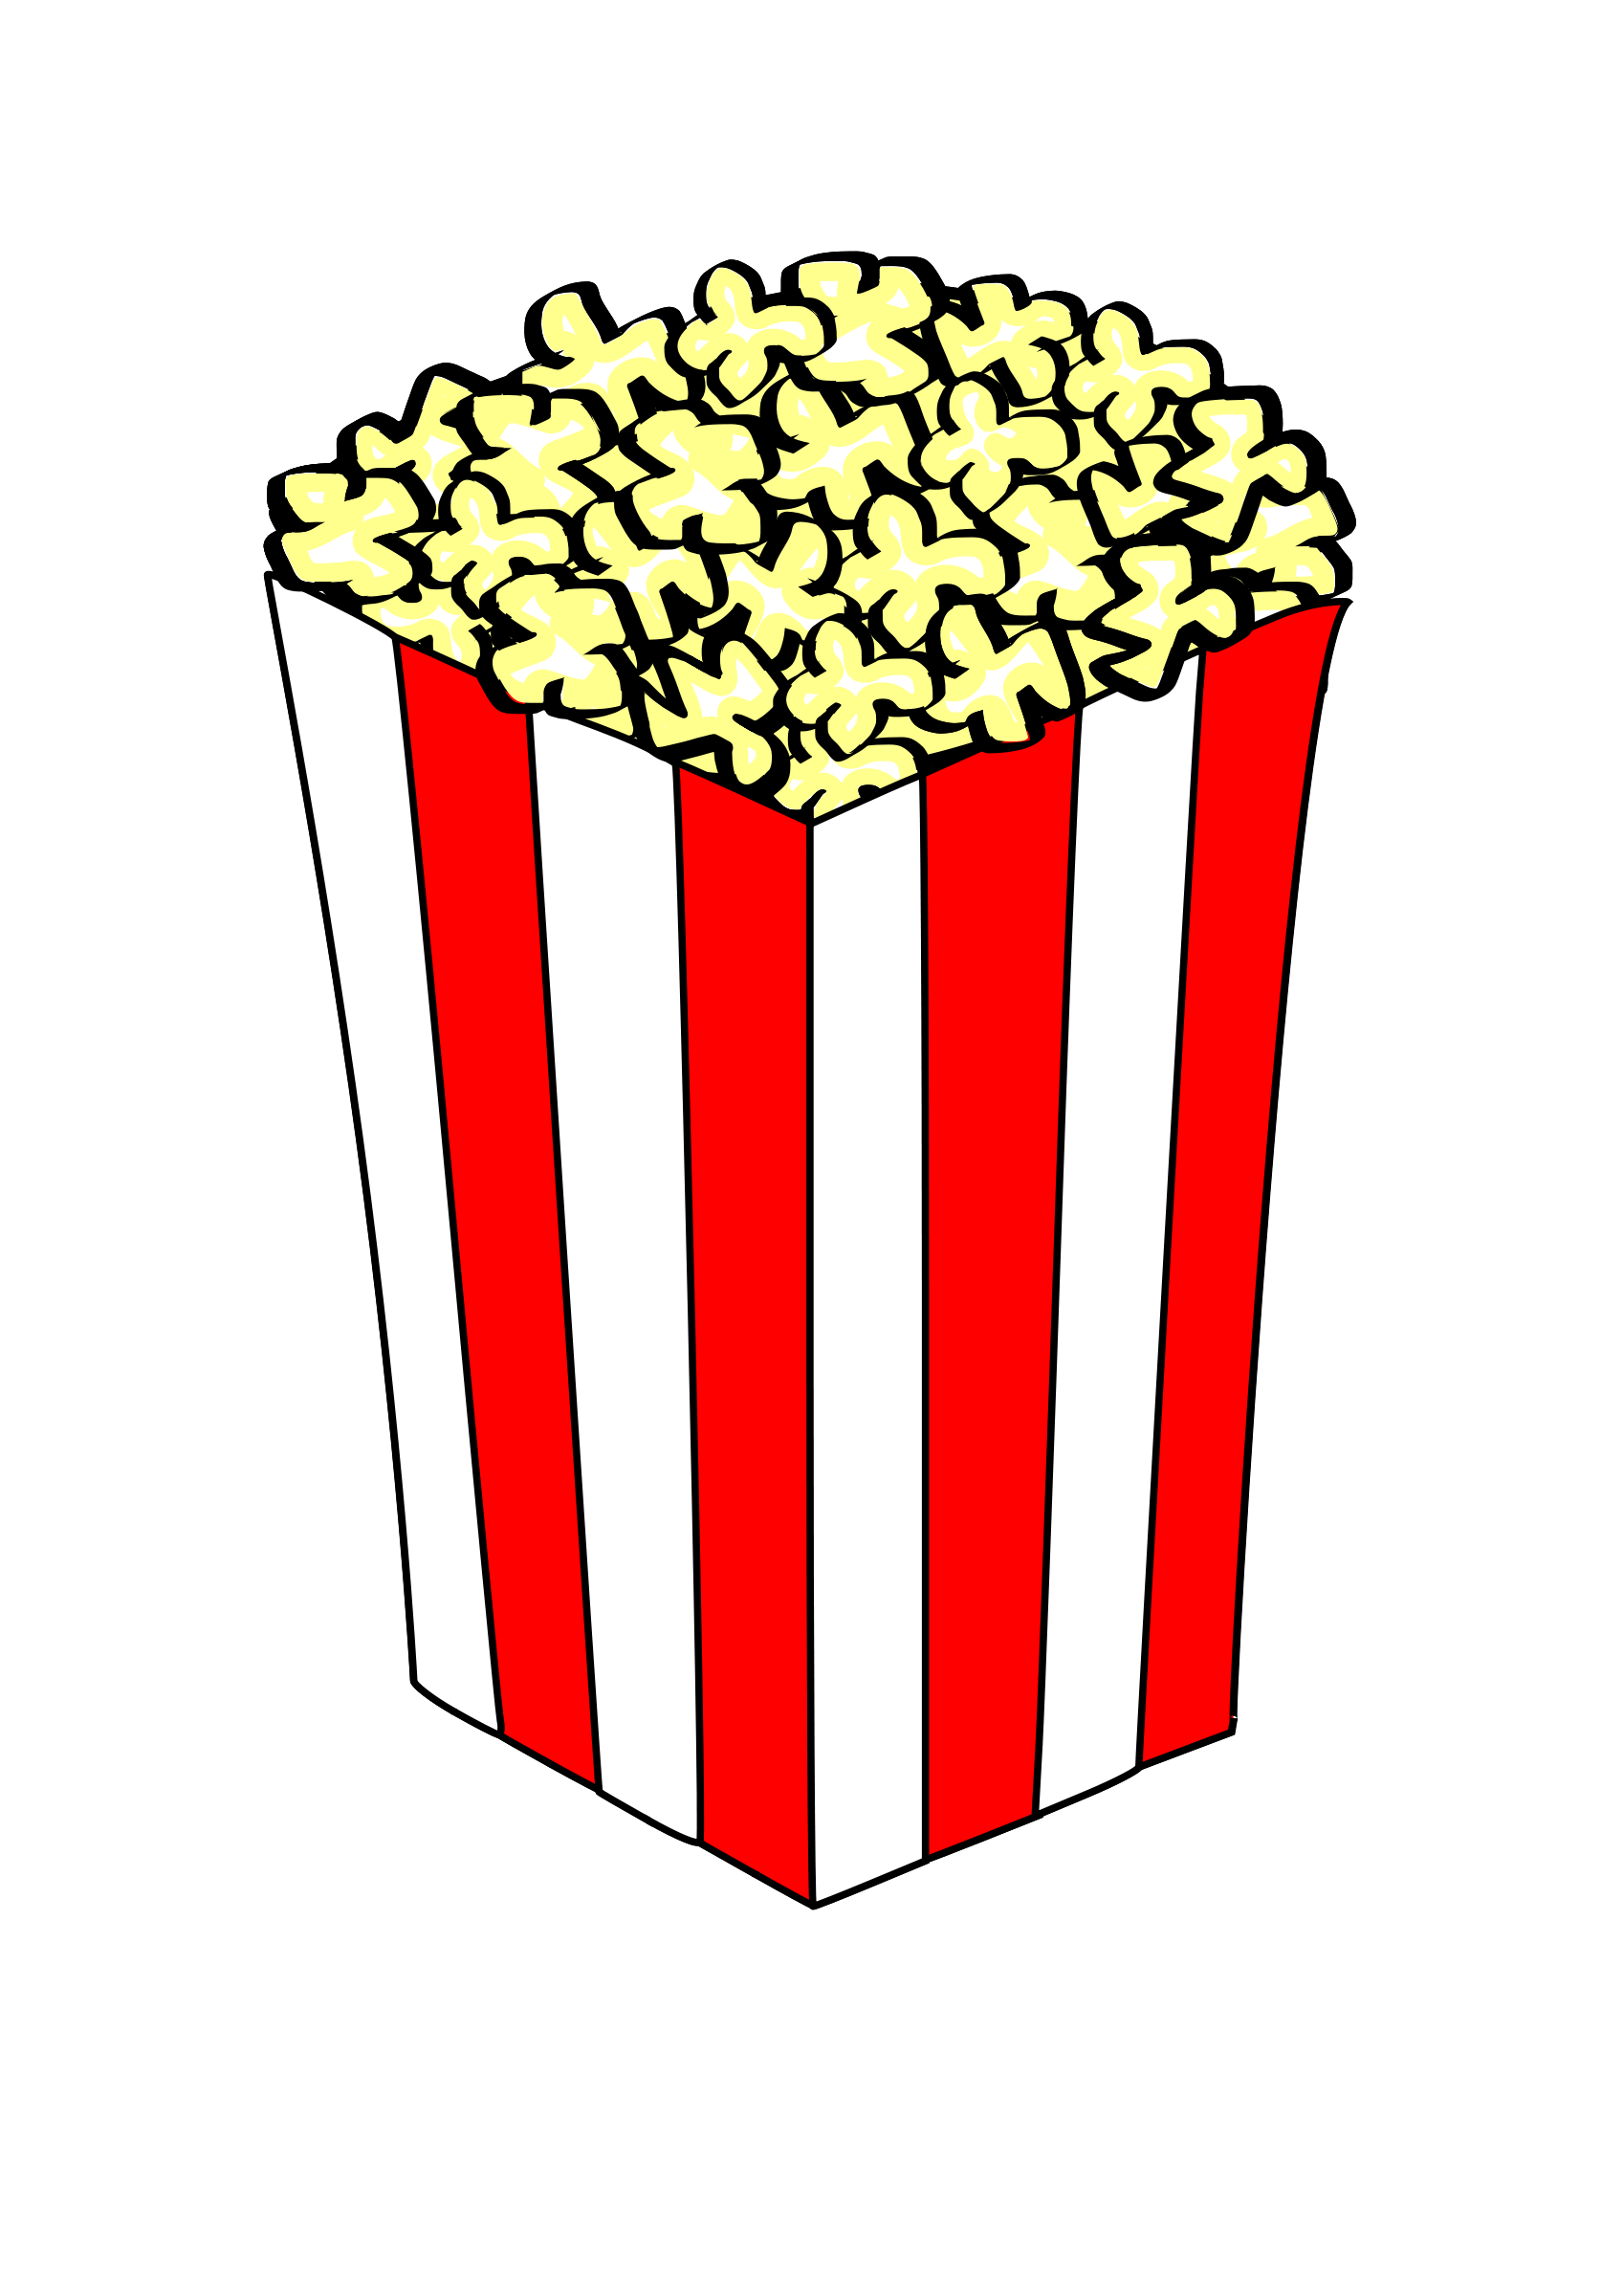 Popcorn kernel clipart transparent background clipartfest 2.